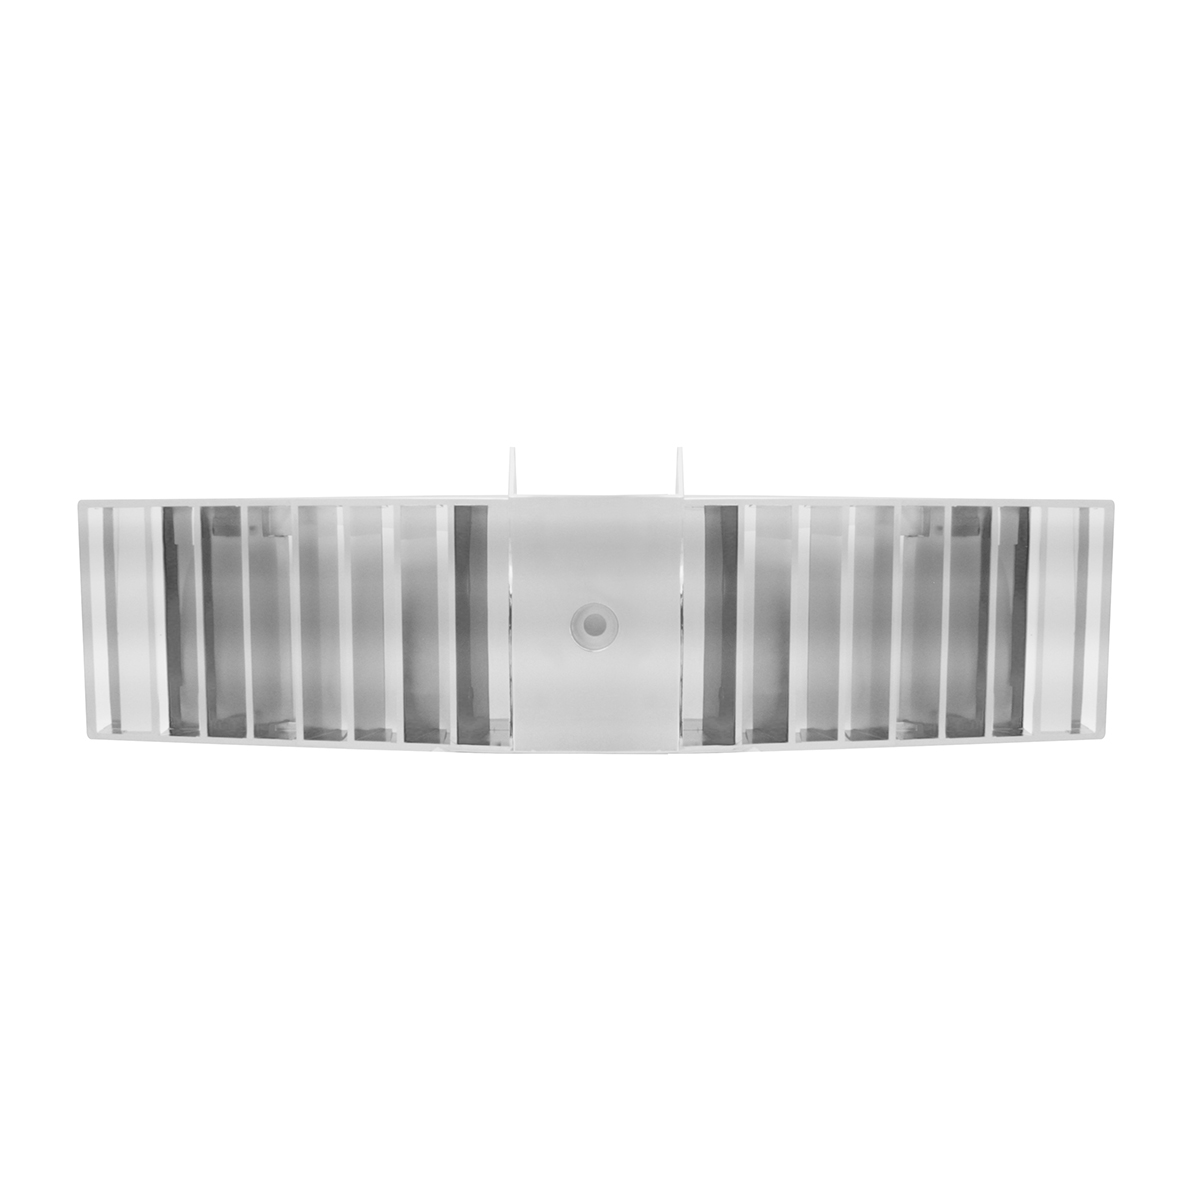 68409 Top Defroster Vent for Freightliner Classic/FLDs